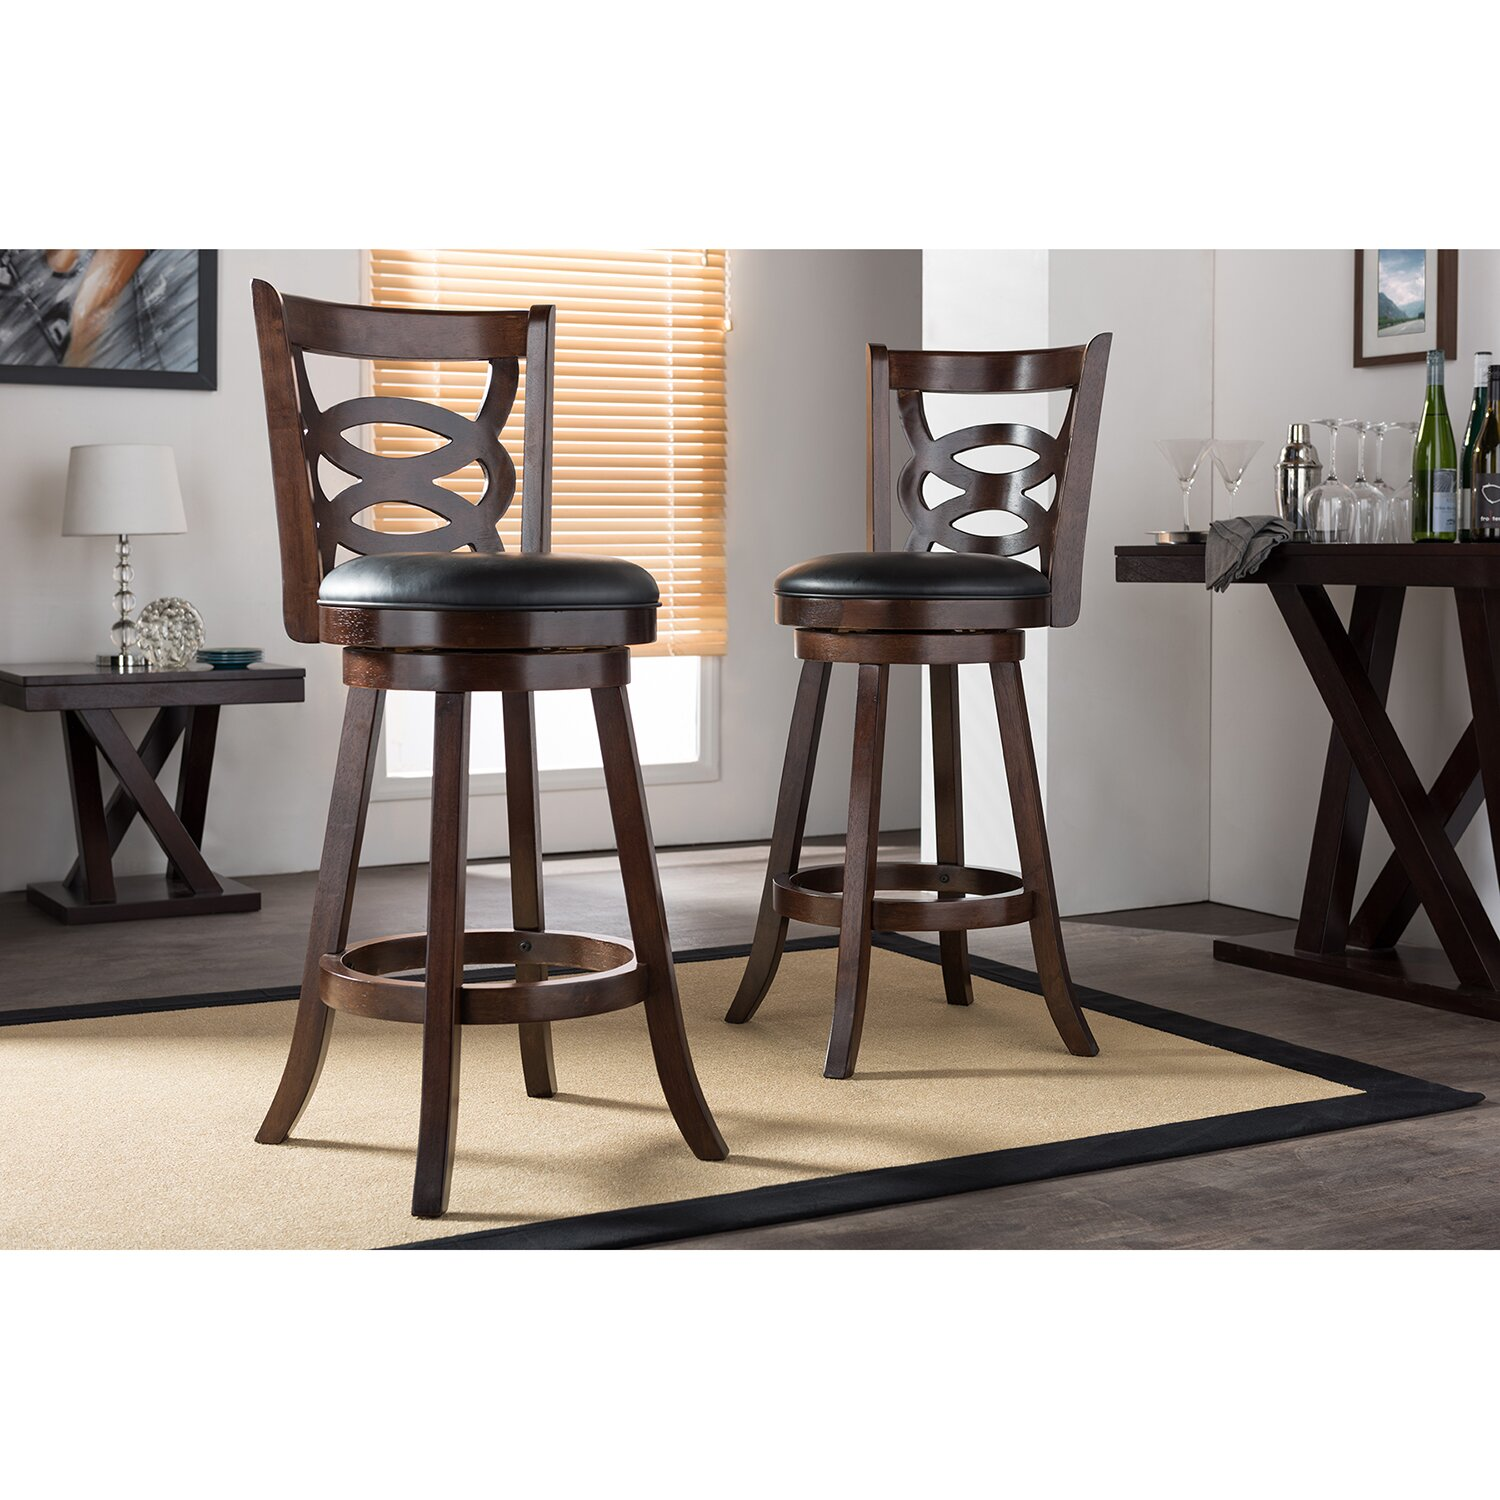 28 cappuccino square pub with stools set and chairs u 3 pc